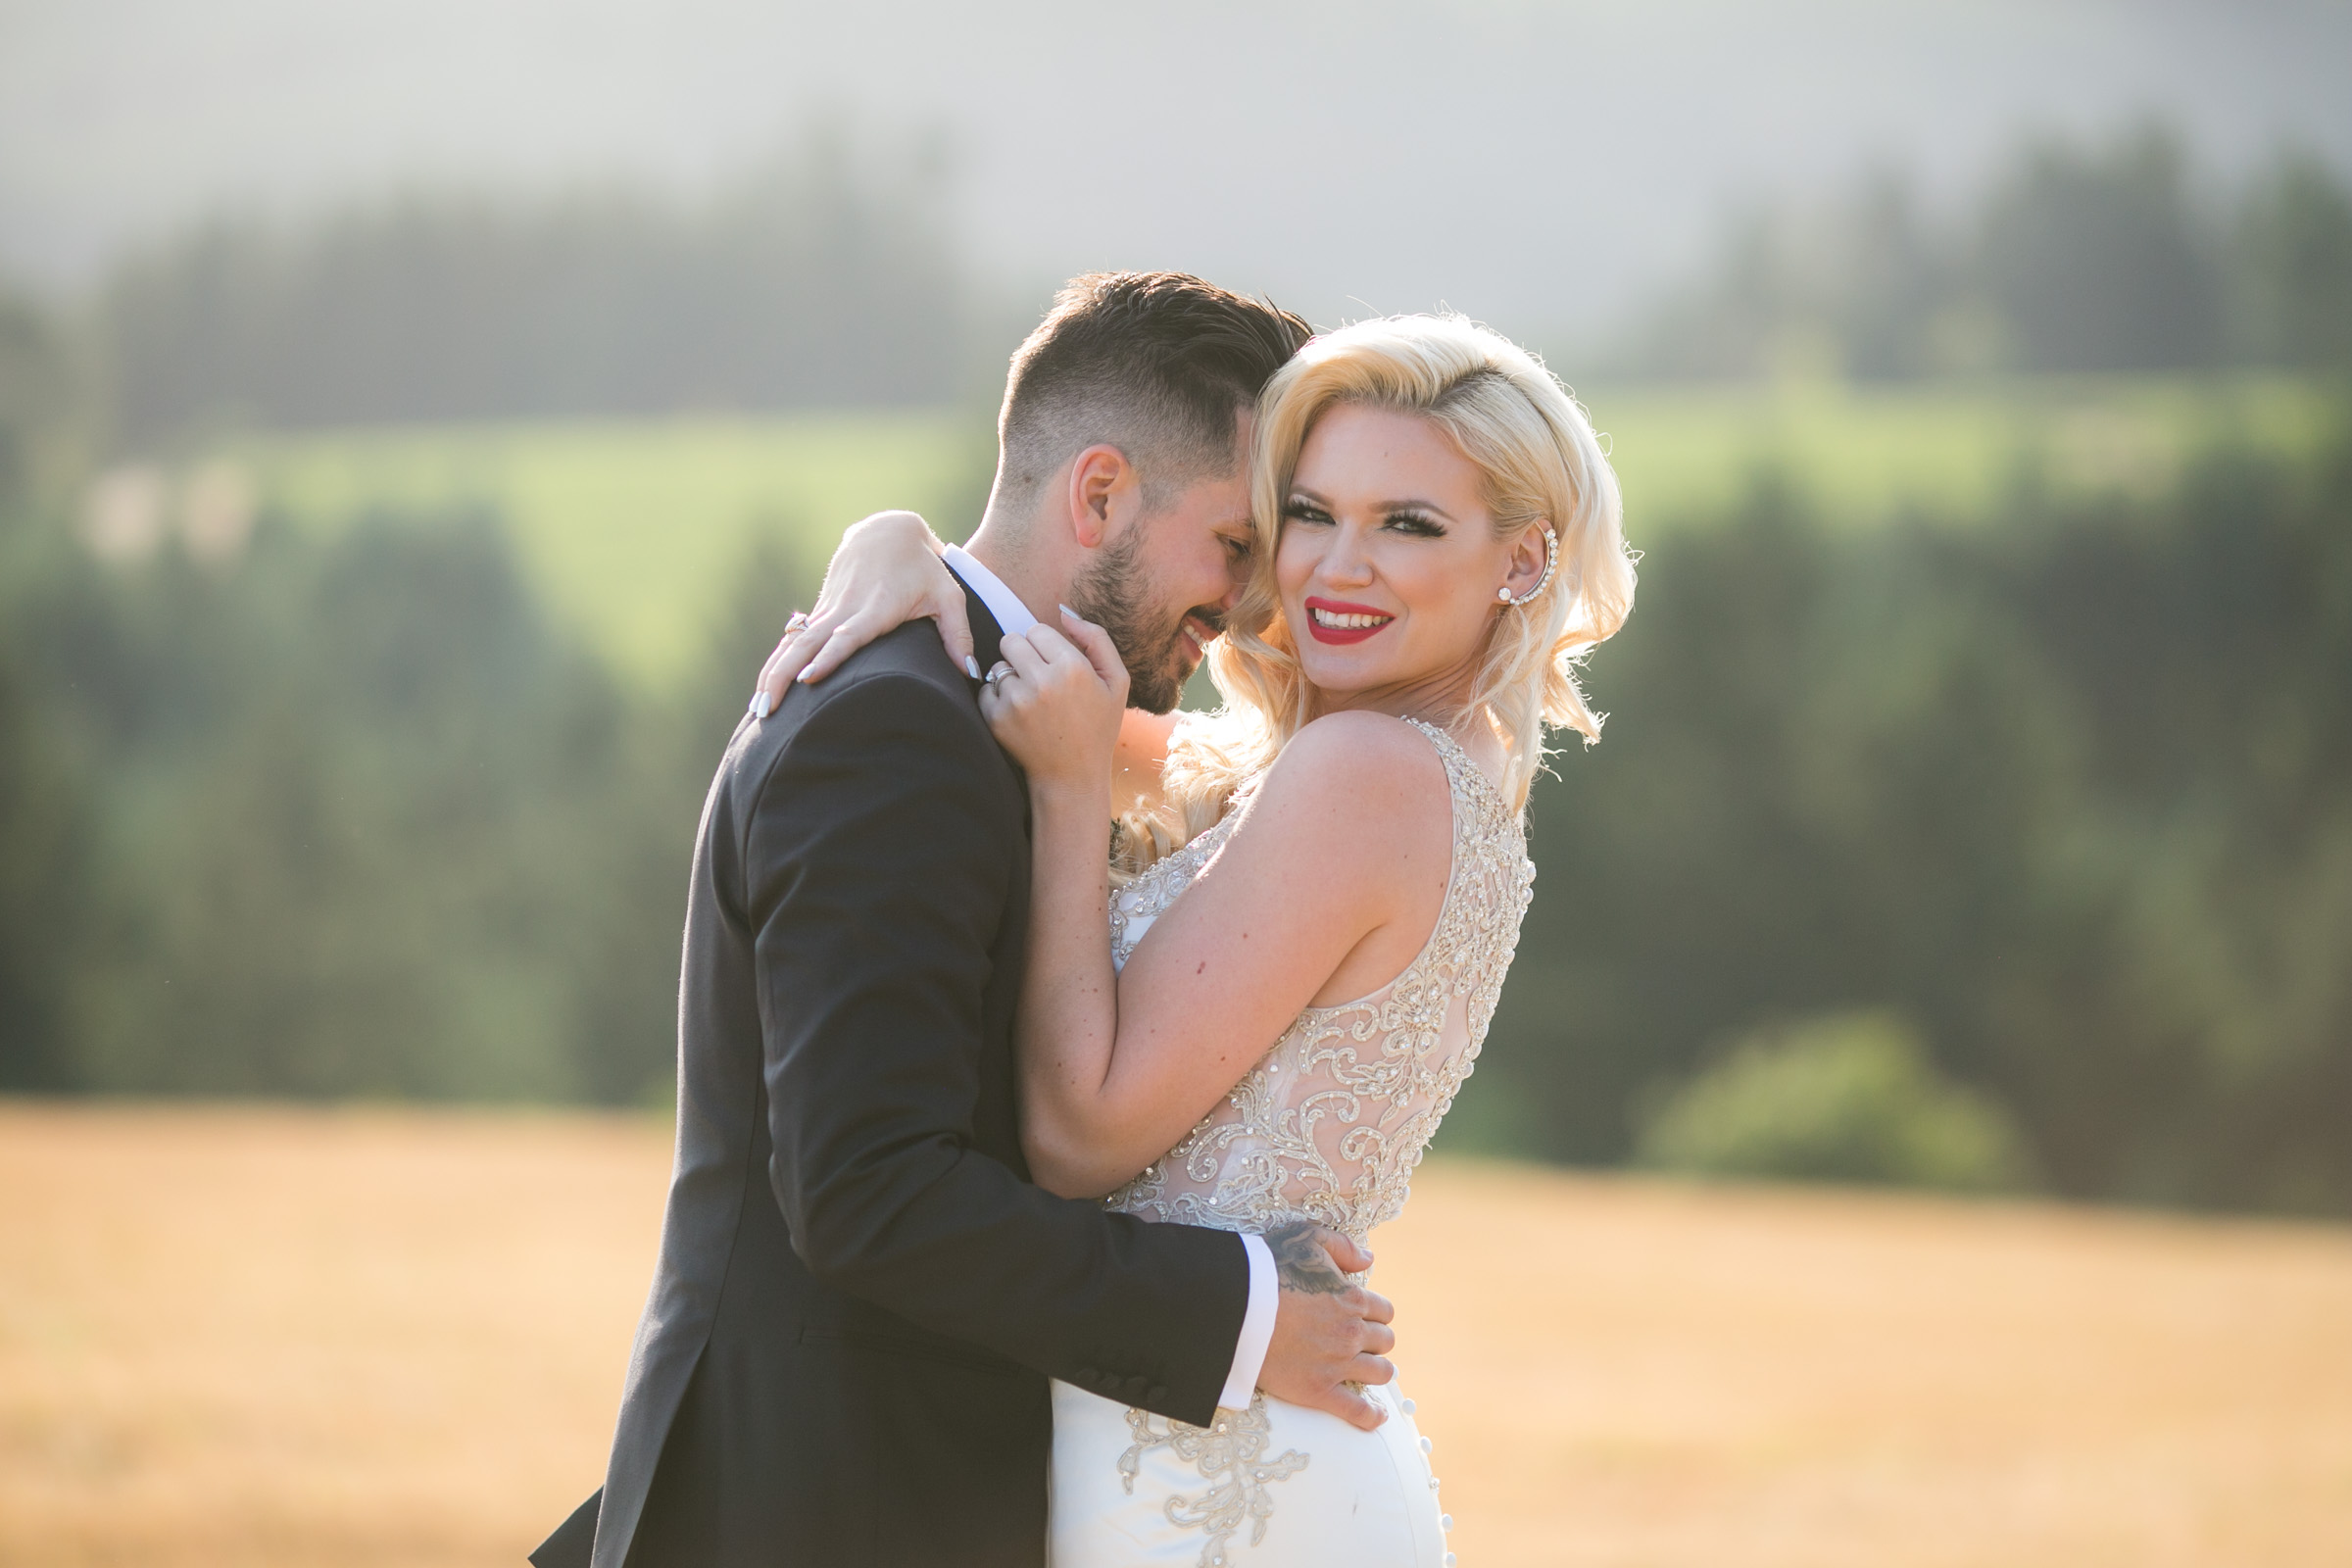 Bridalbliss.com | Portland Wedding | Oregon Event Planning and Design | Dan Rice Photography